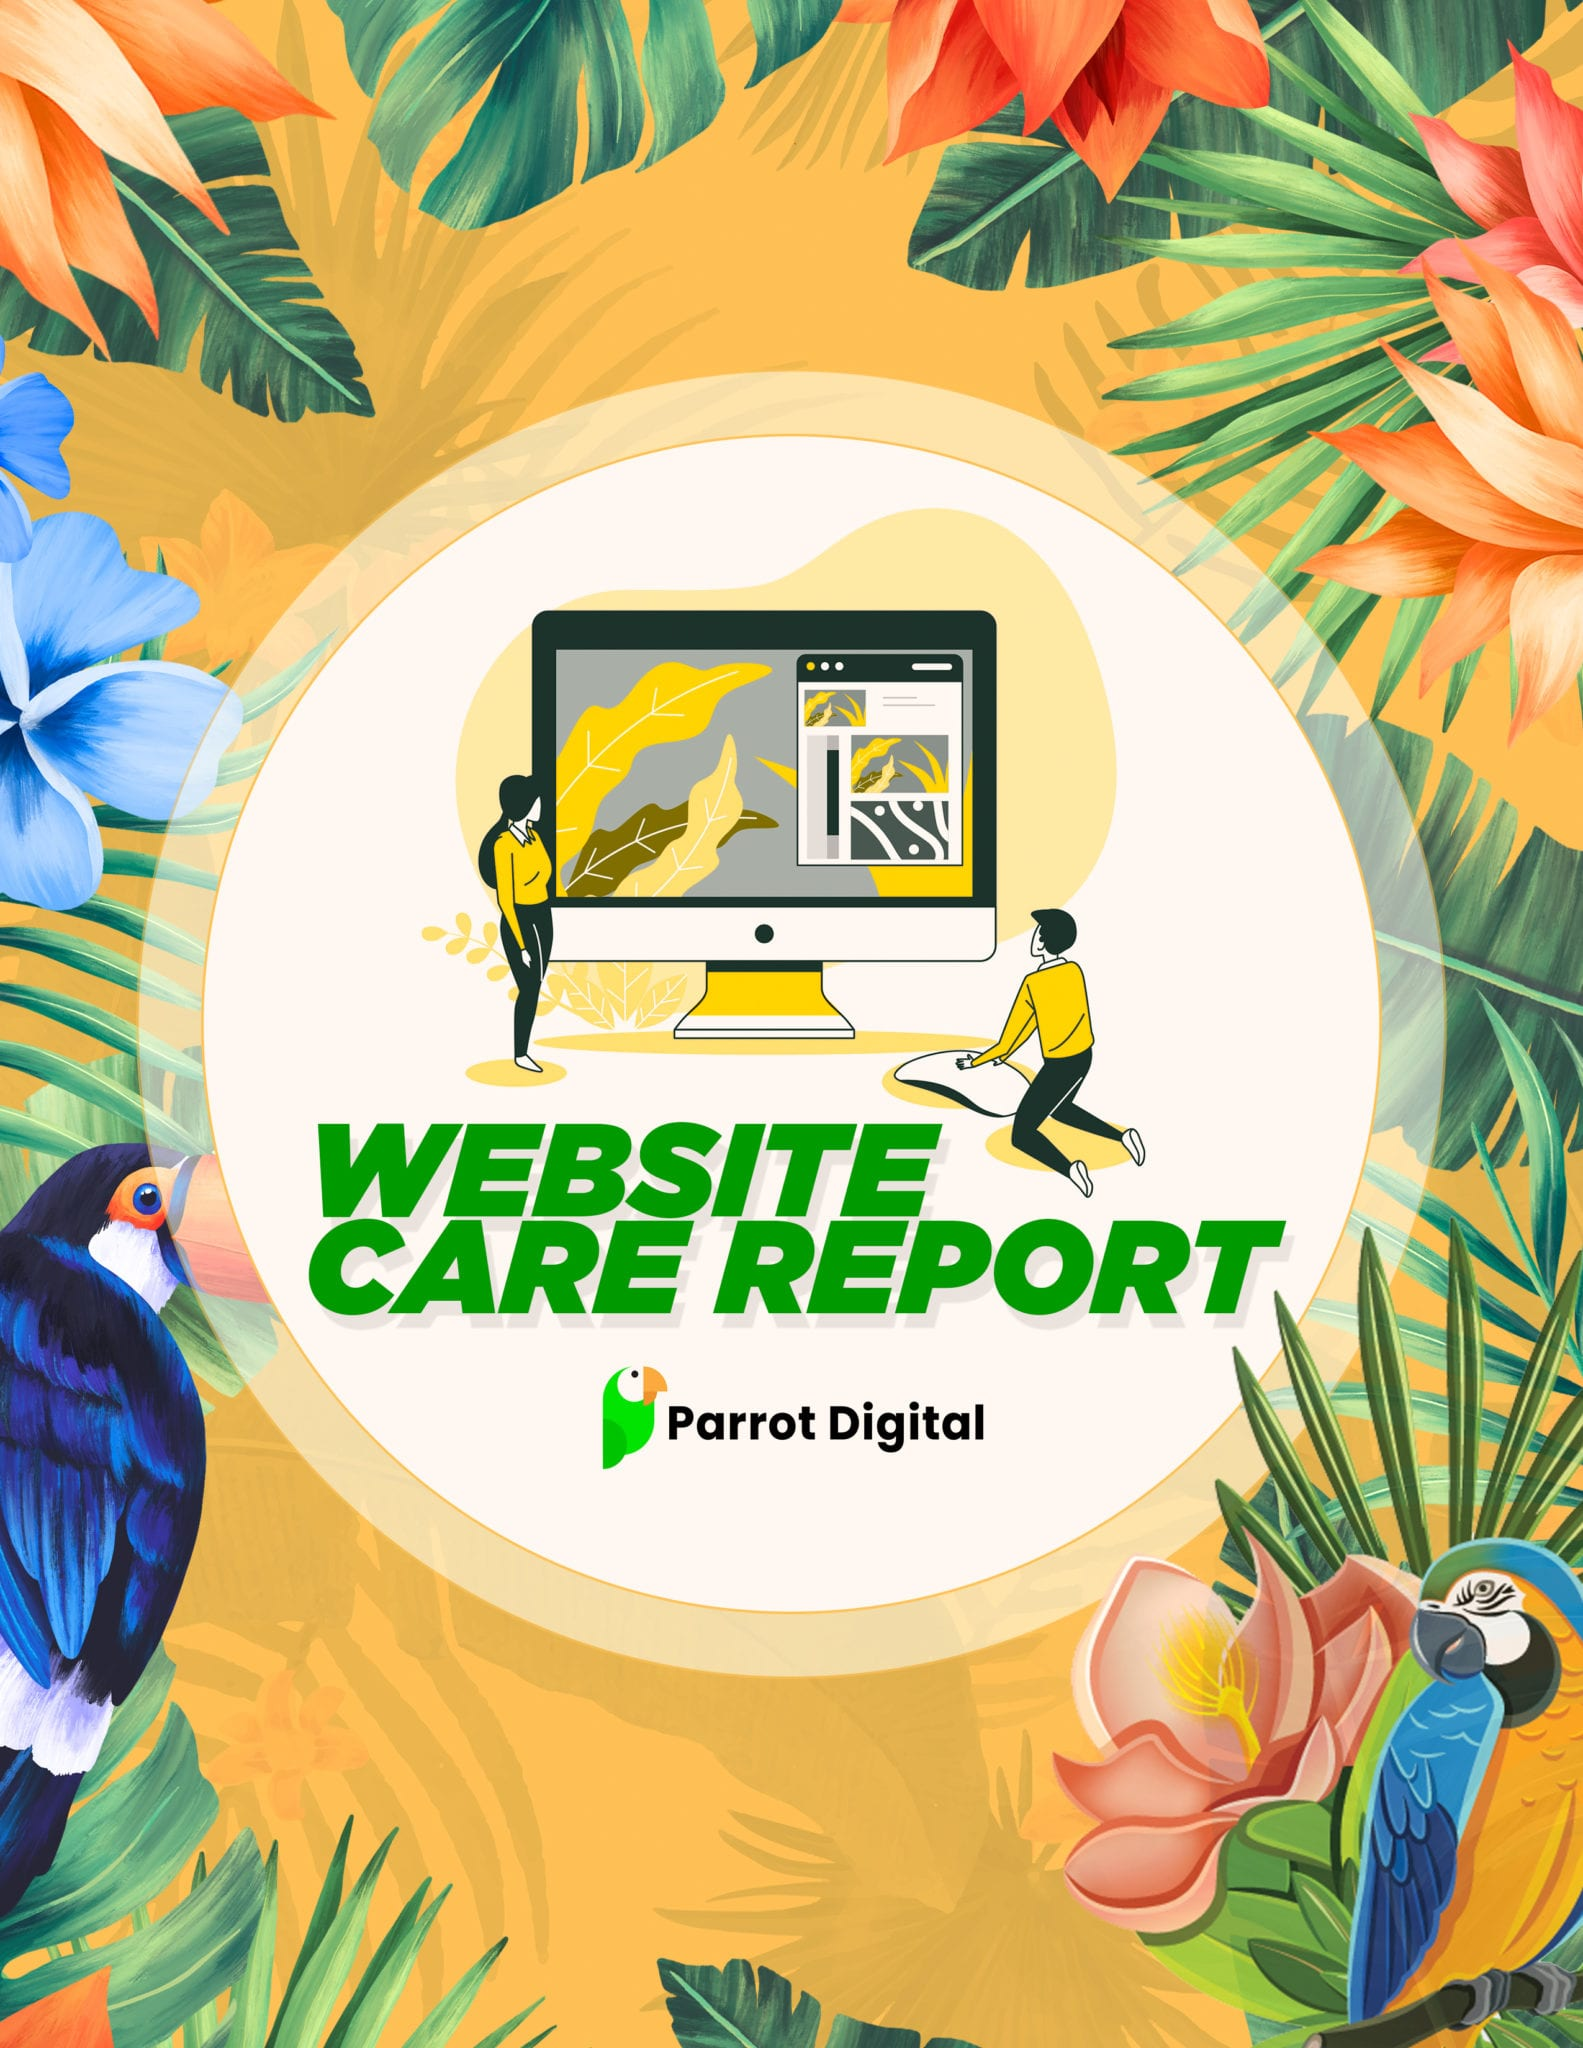 WEBSITE CARE REPORT